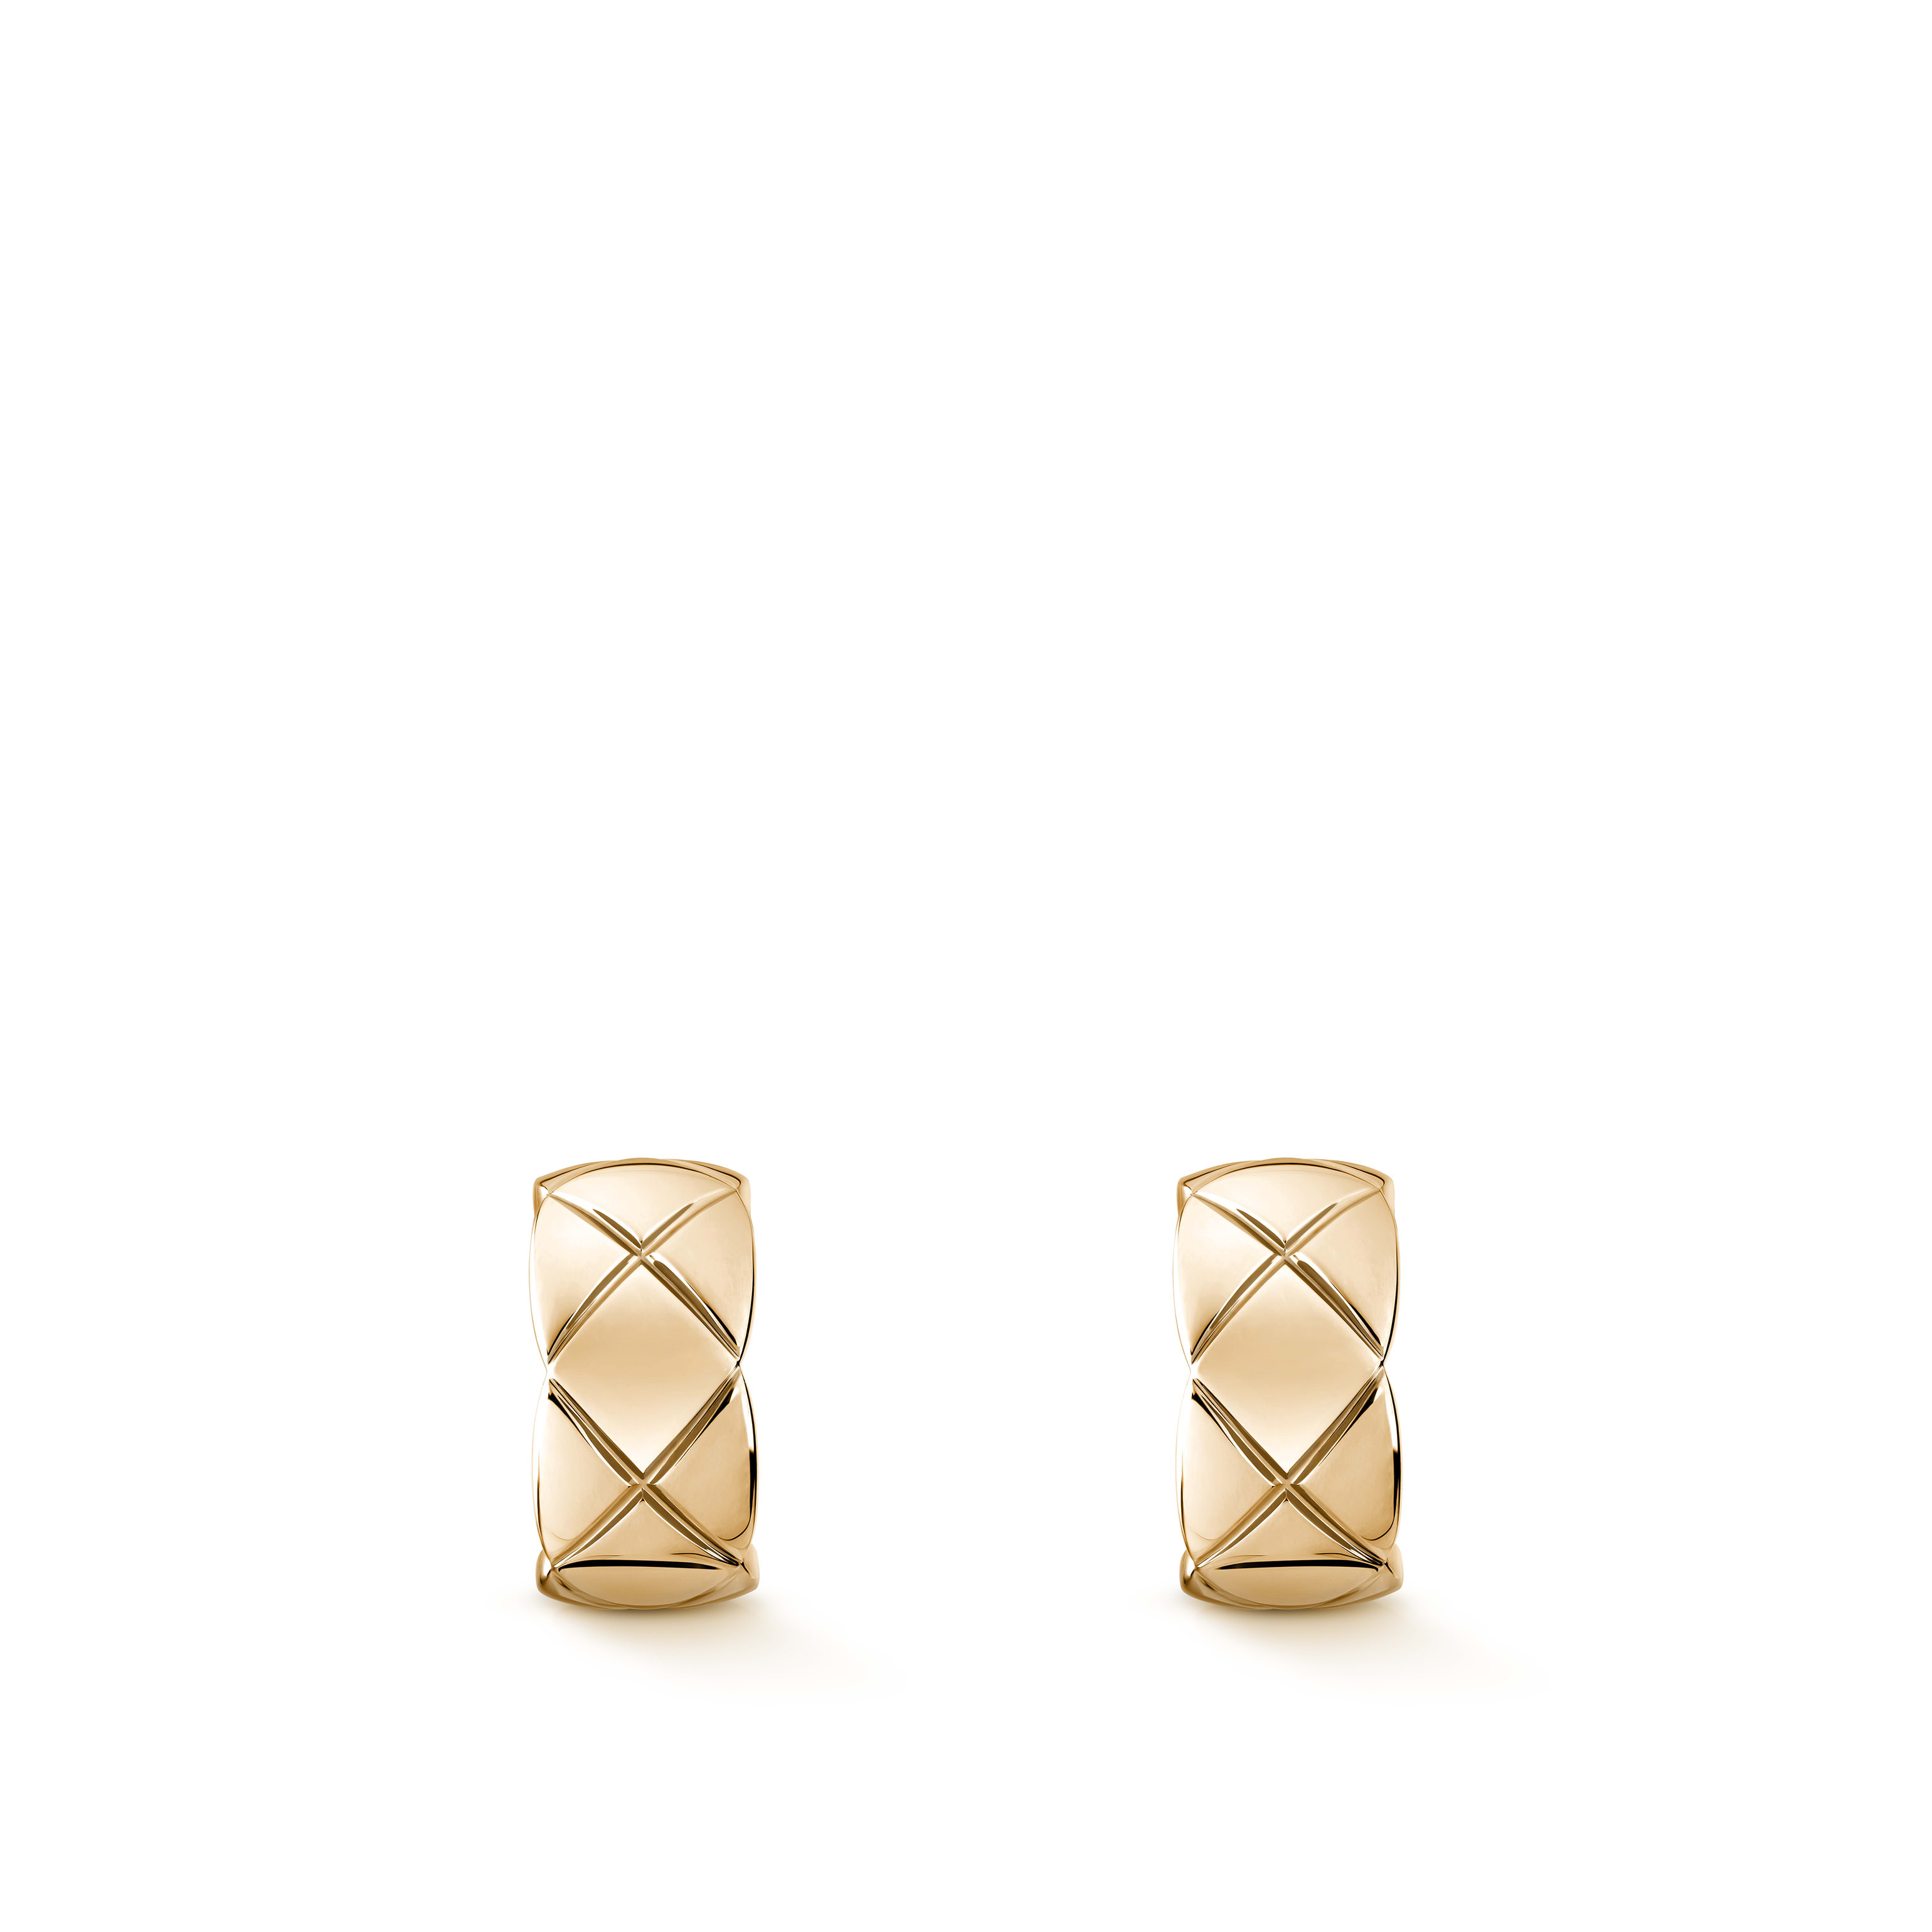 Coco Crush earrings - Quilted motif, 18K BEIGE GOLD - CHANEL - Default view - see standard sized version